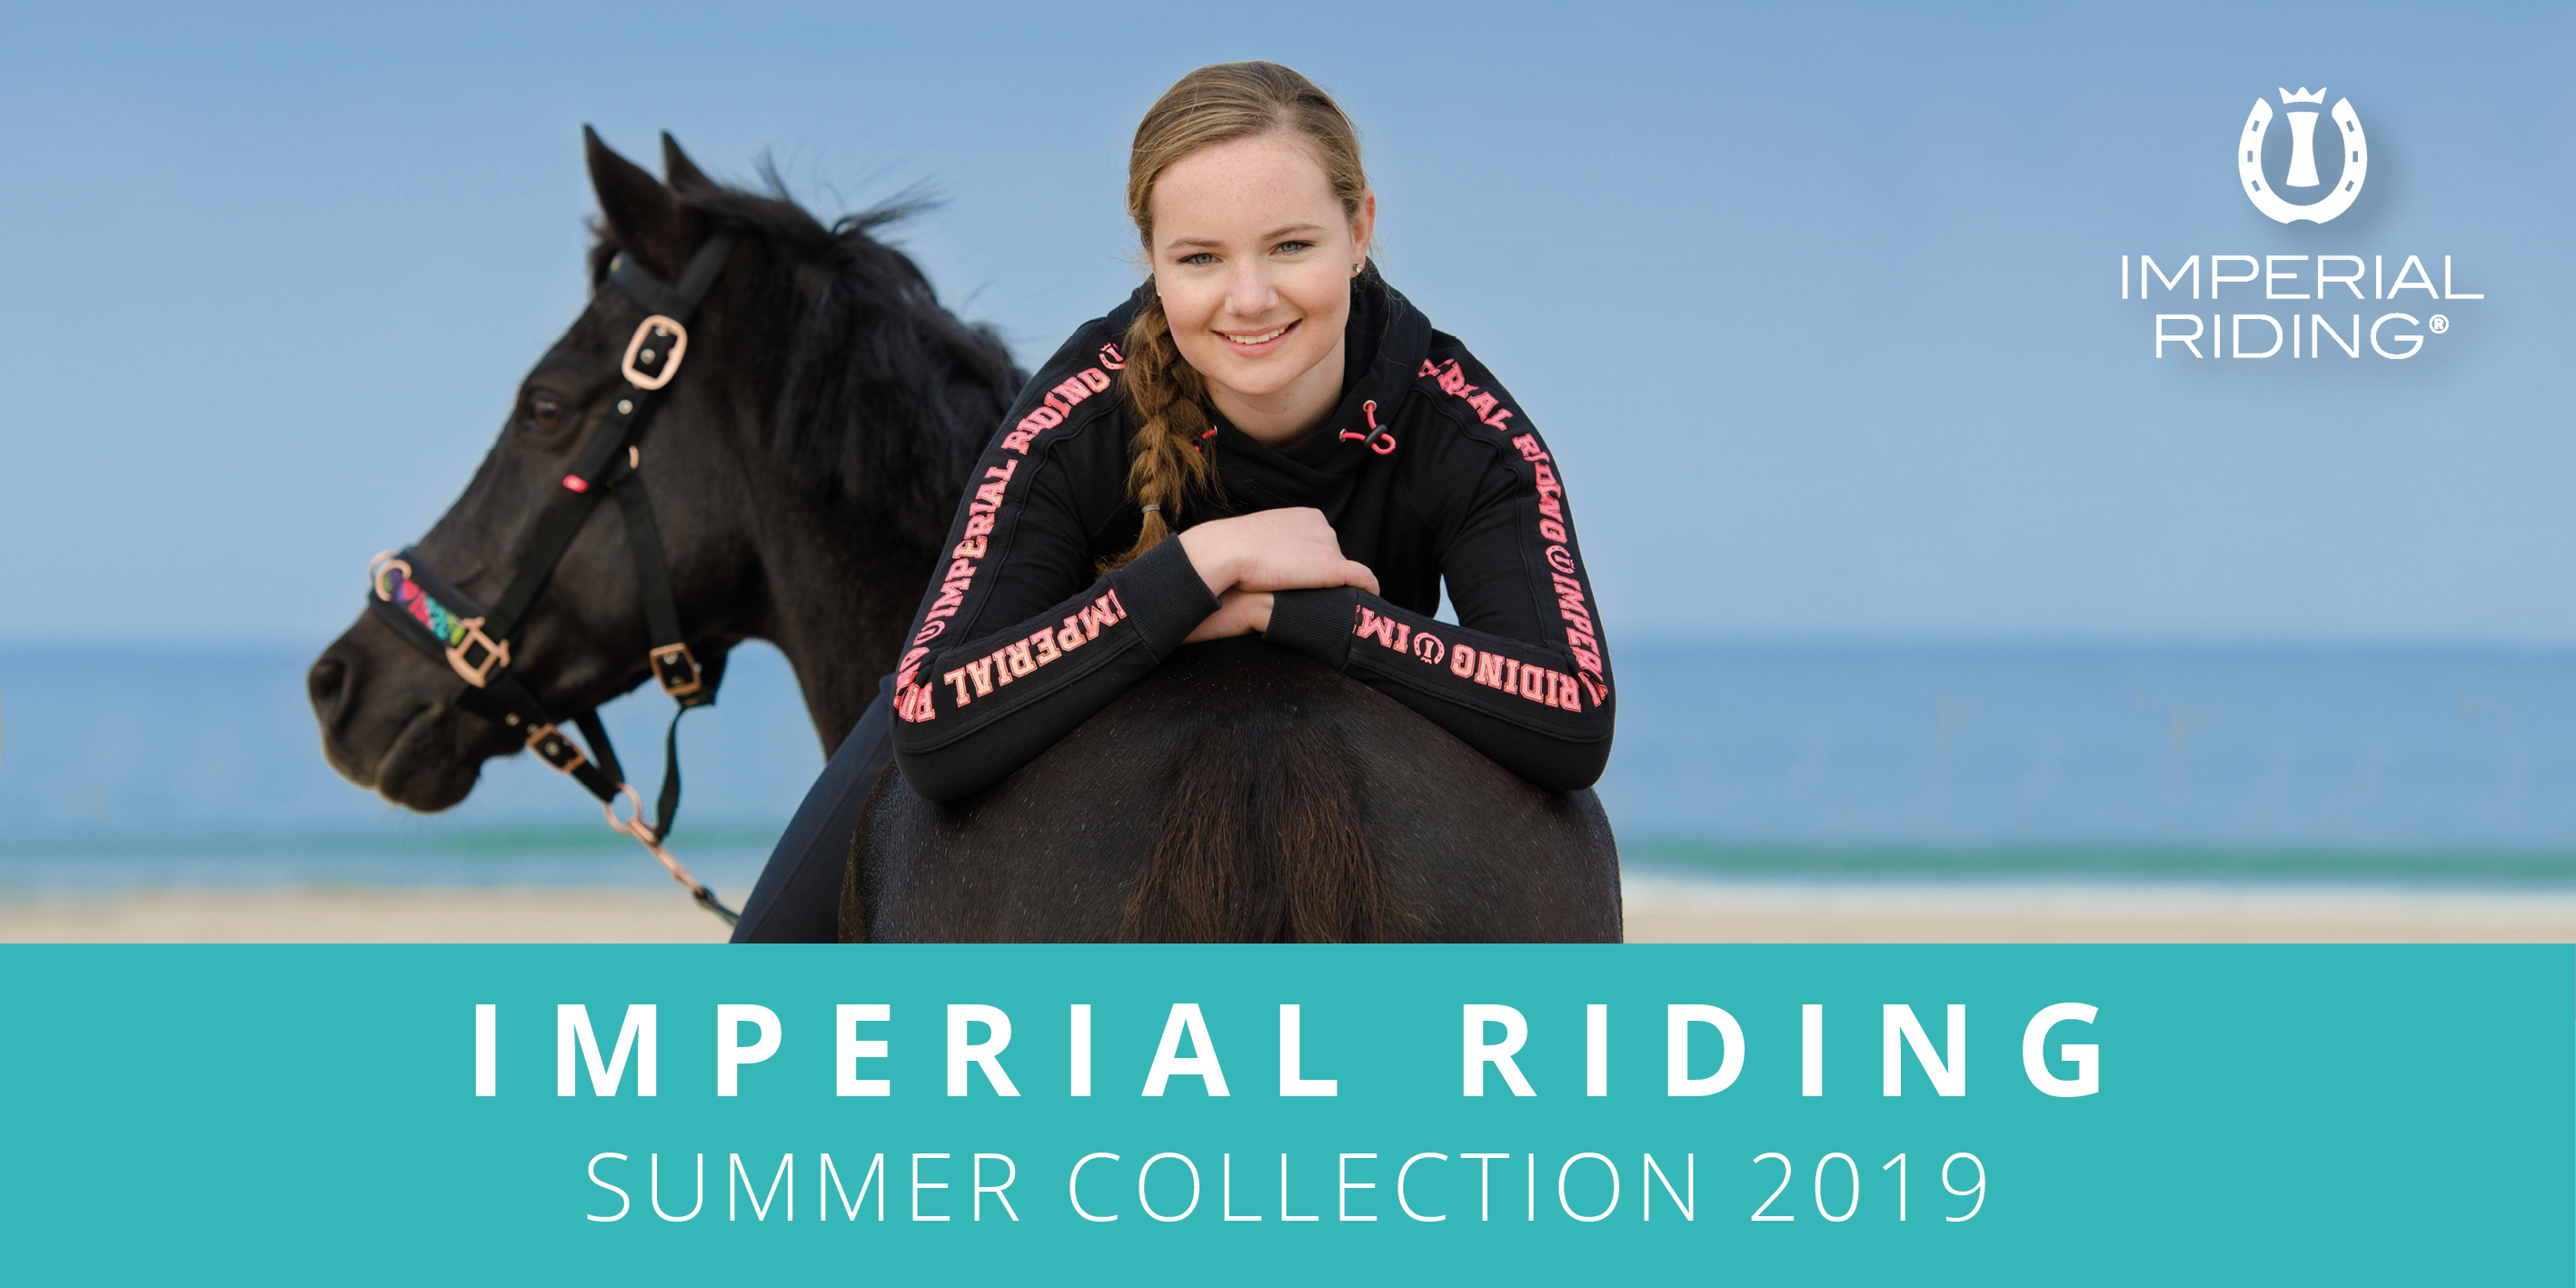 original_images/CollectieBannersImperialRiding.834d6e.jpg